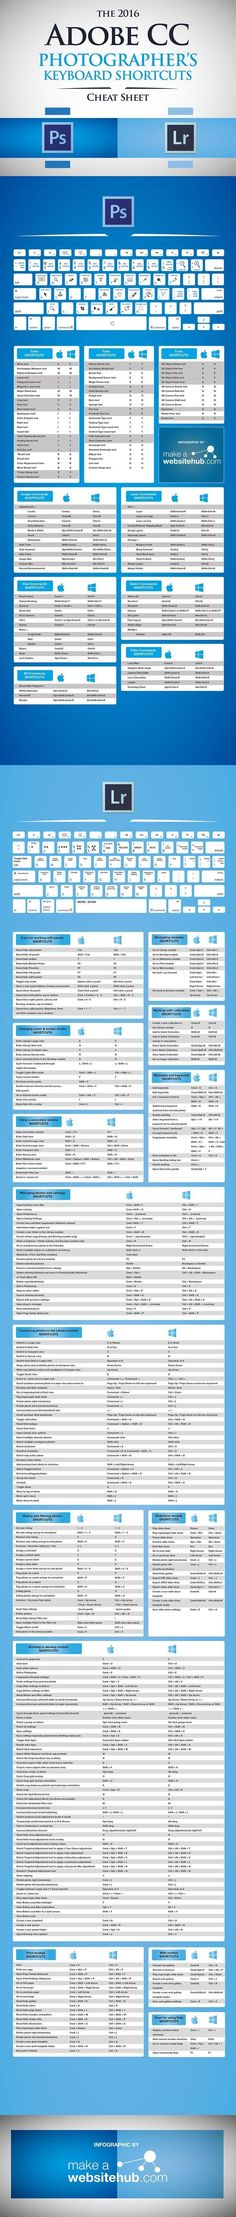 The Ultimate Adobe CC Photoshop and Lightroom Shortcut Cheat Sheet #photography #postprocessing